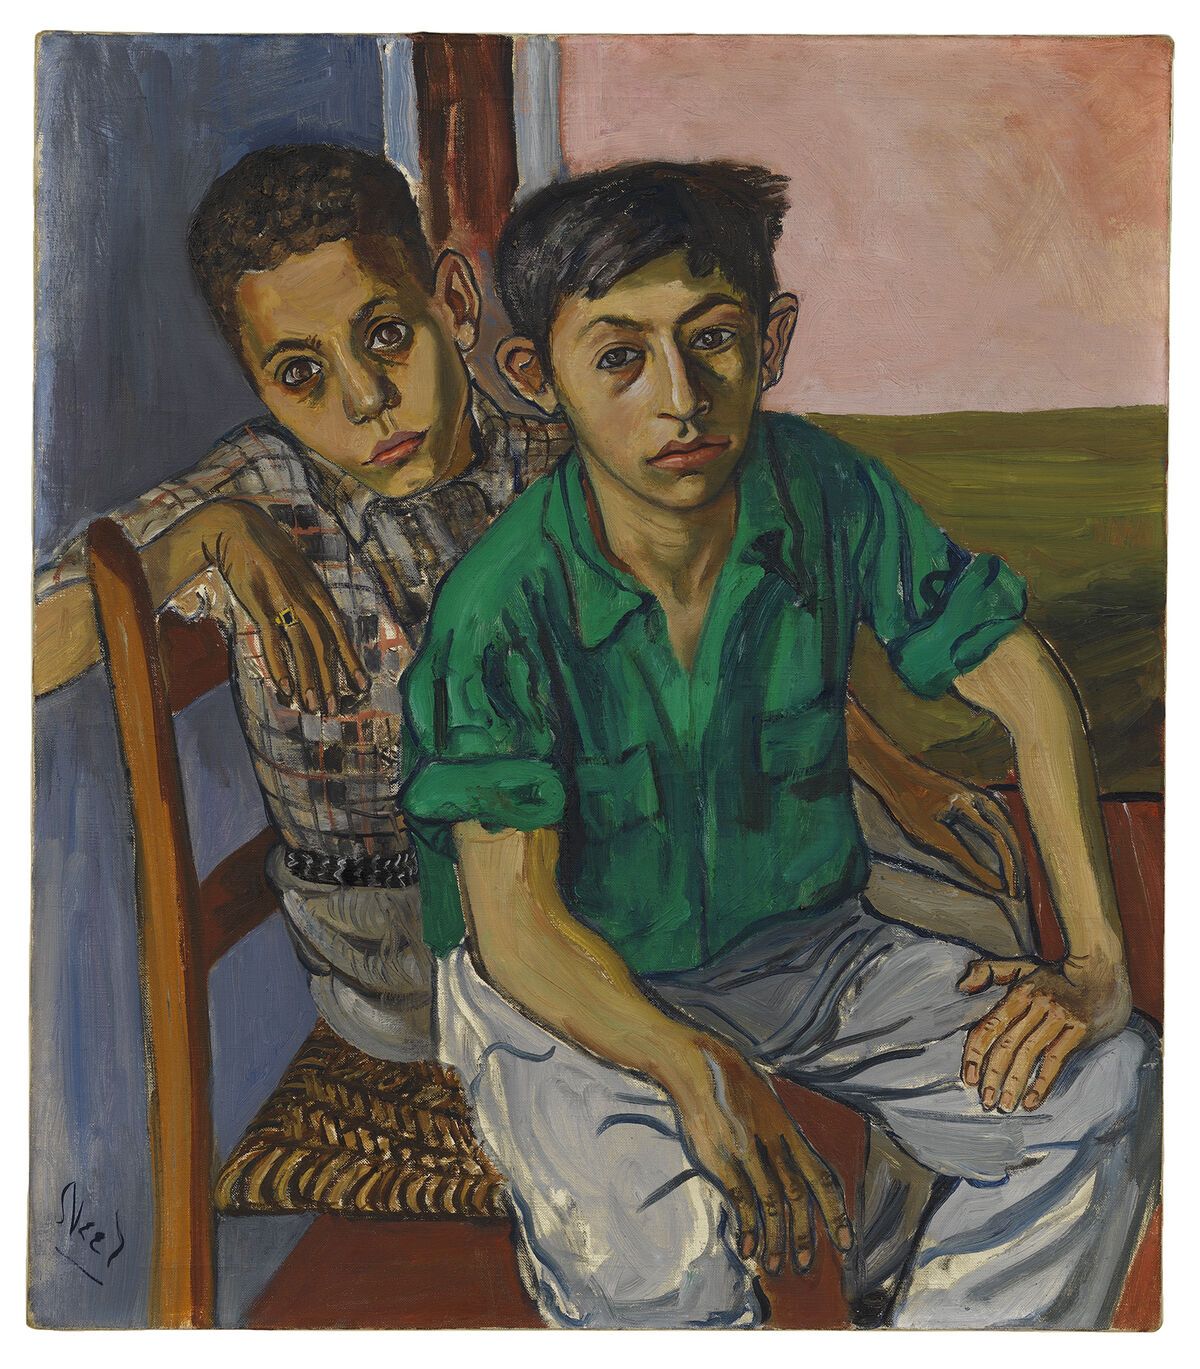 Alice Neel, Two Puerto Rican Boys, 1956.Jeff and Mei Sze Greene Collection. © The Estate of Alice Neel. Courtesy David Zwirner, New York/London and Victoria Miro, London.